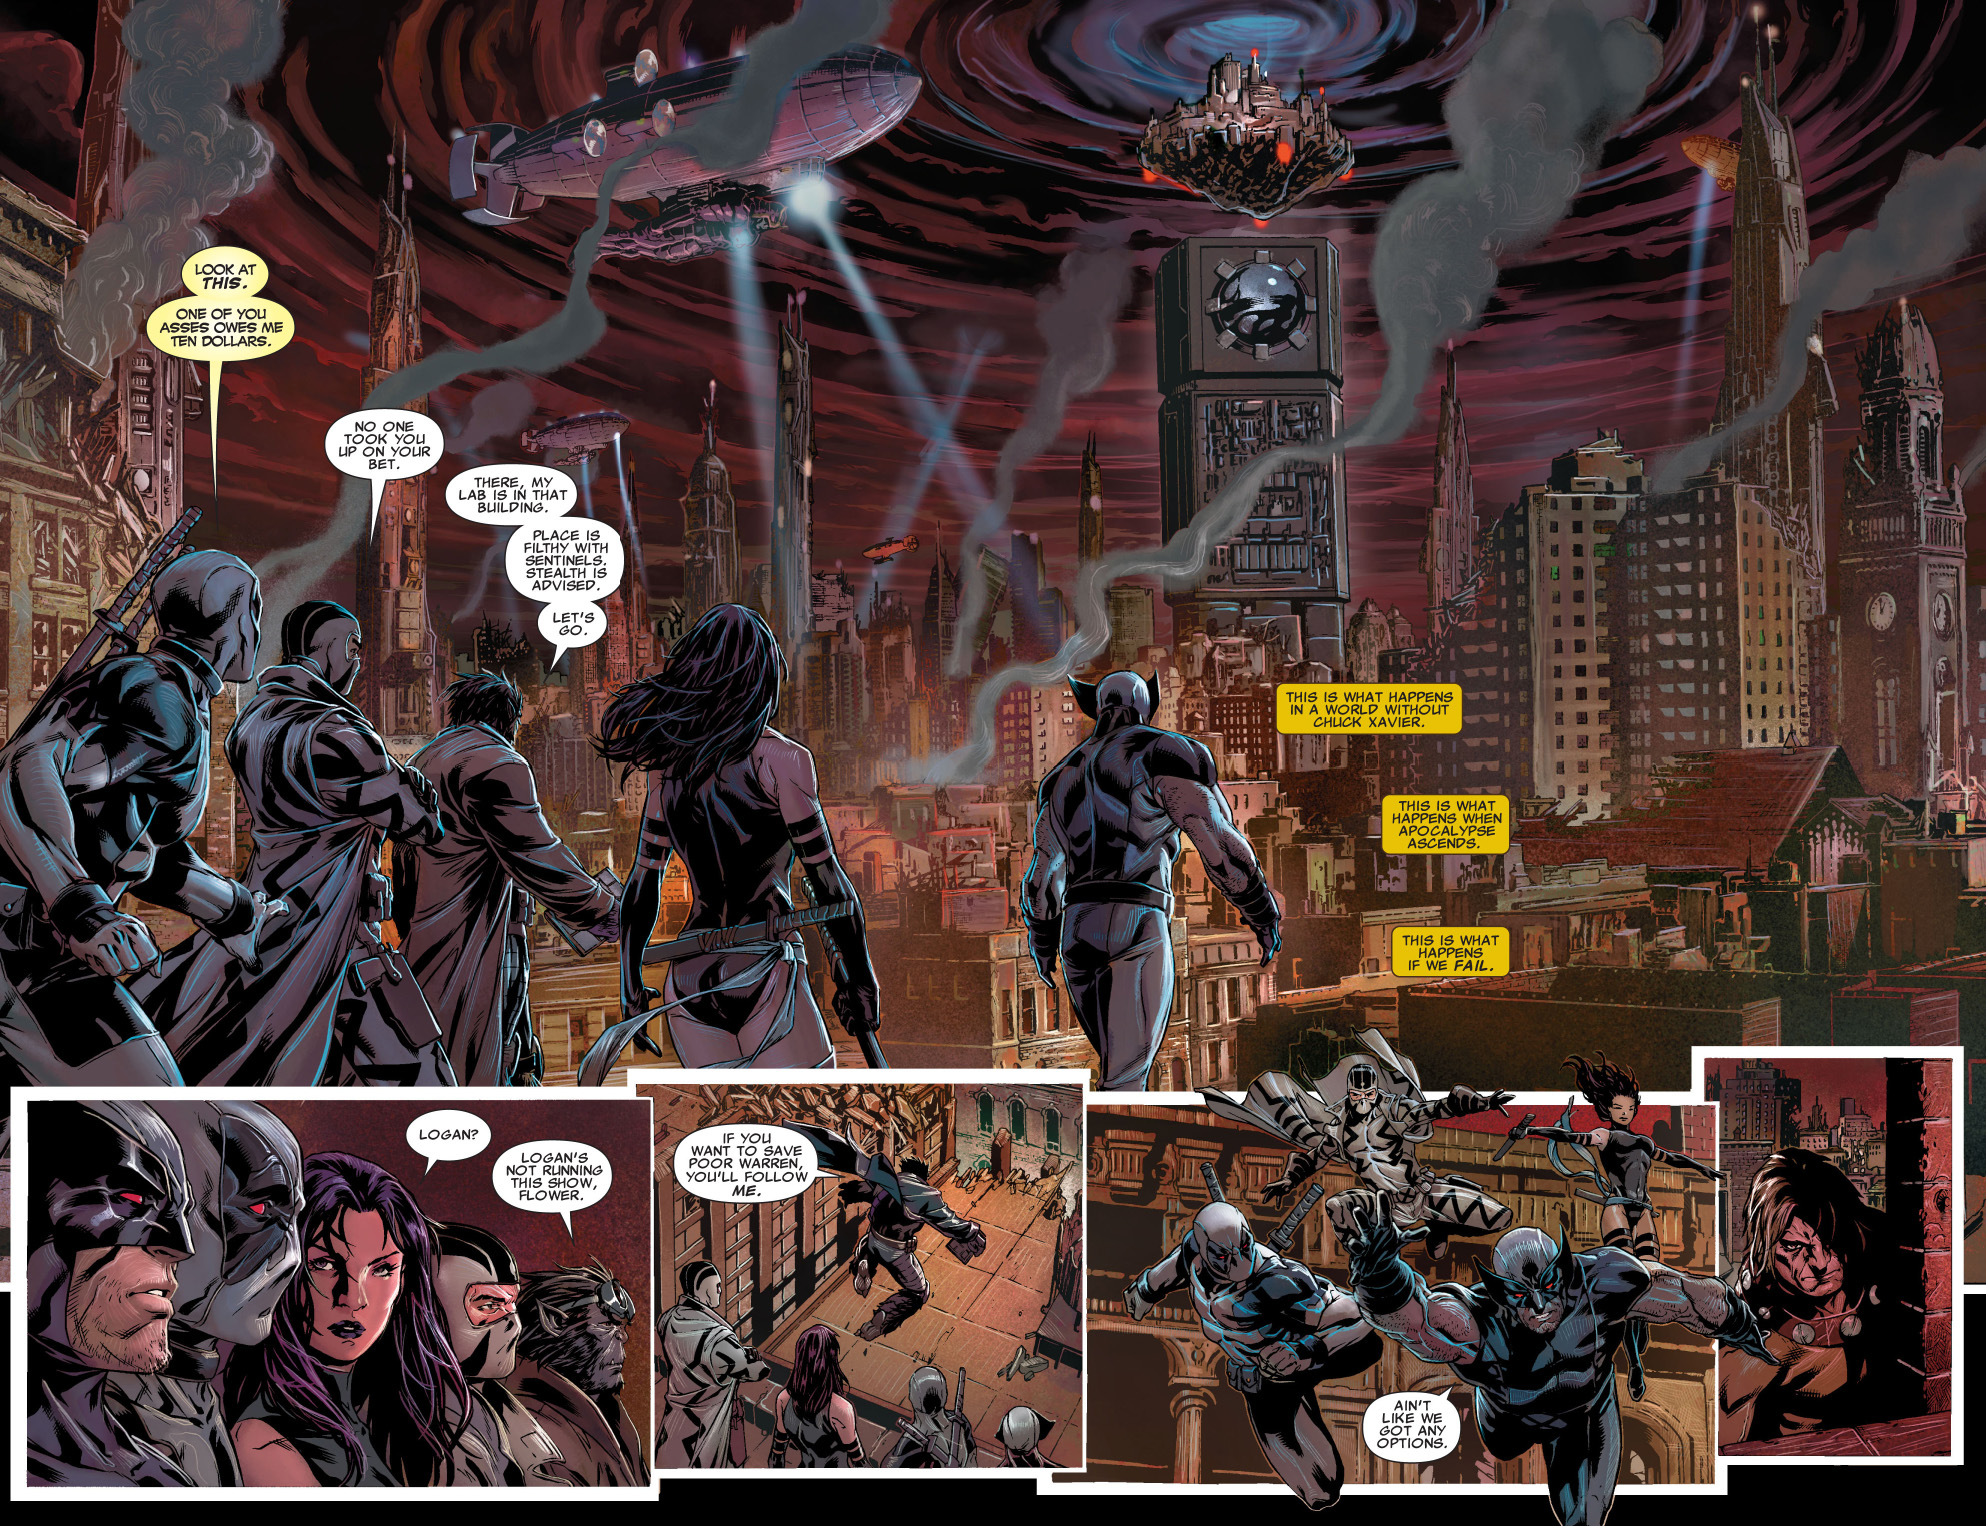 x-force travels to the age of apocalypse